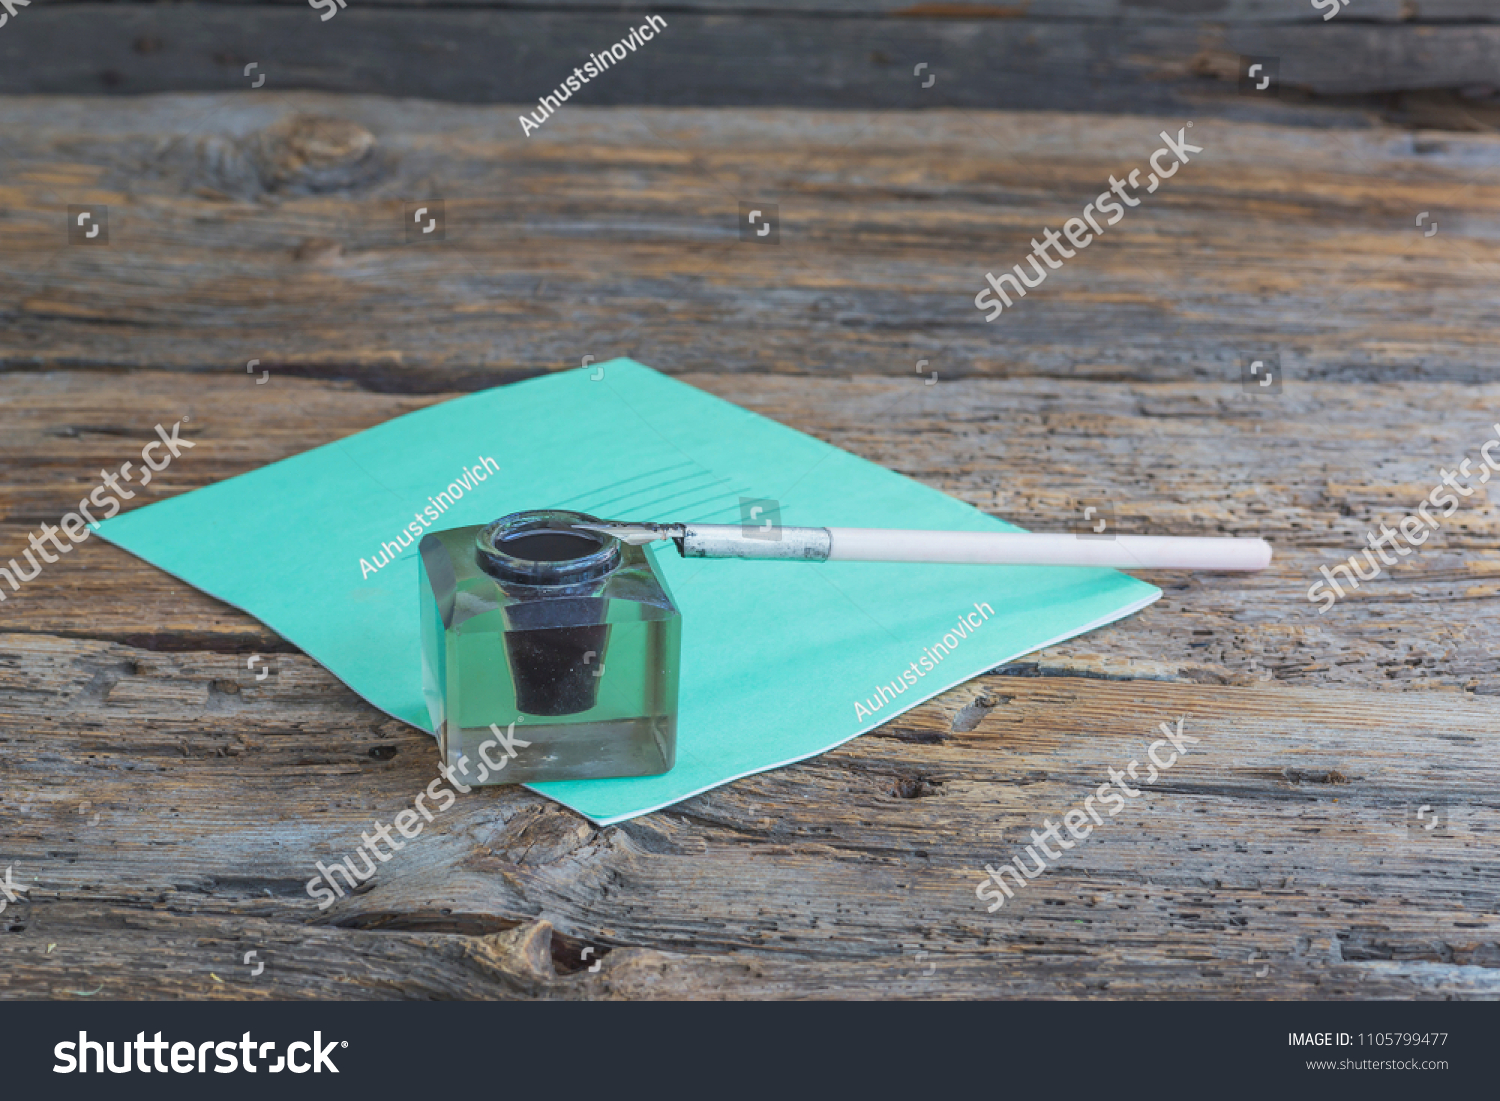 stock-photo-old-school-pen-and-inkwell-1